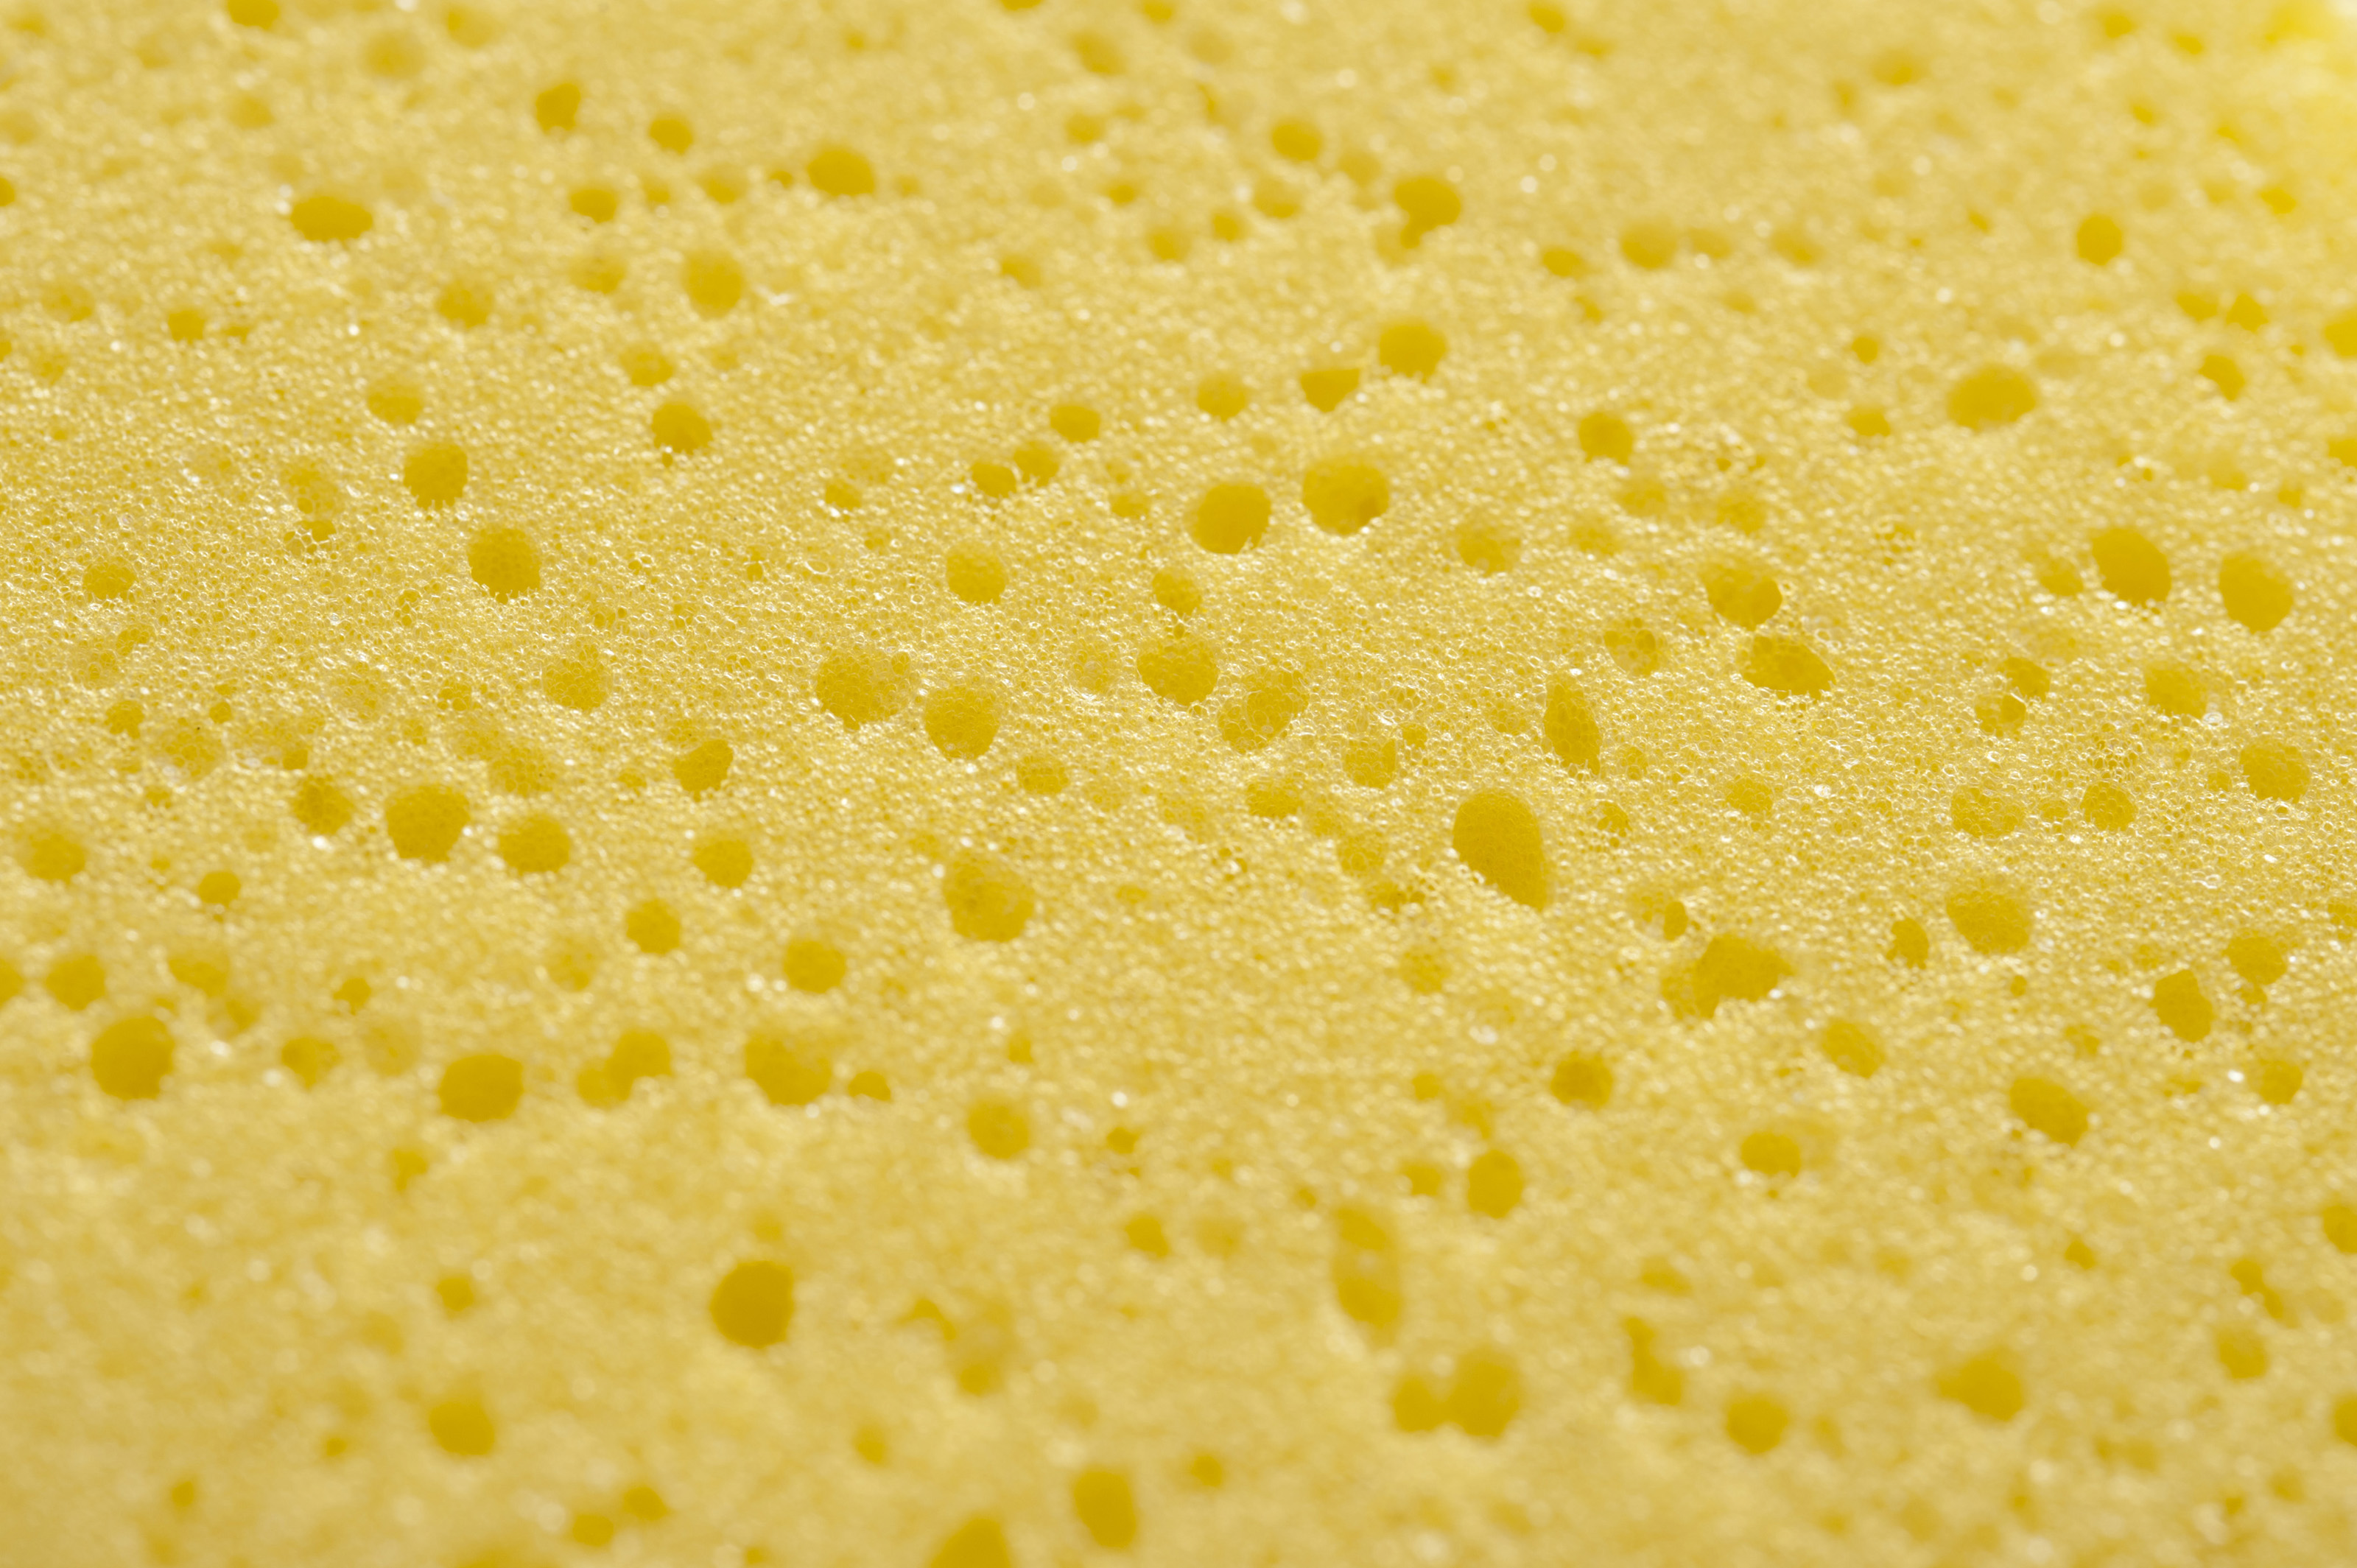 Free stock photo 12687 yellow sponge with pock marks for Sponge co uk